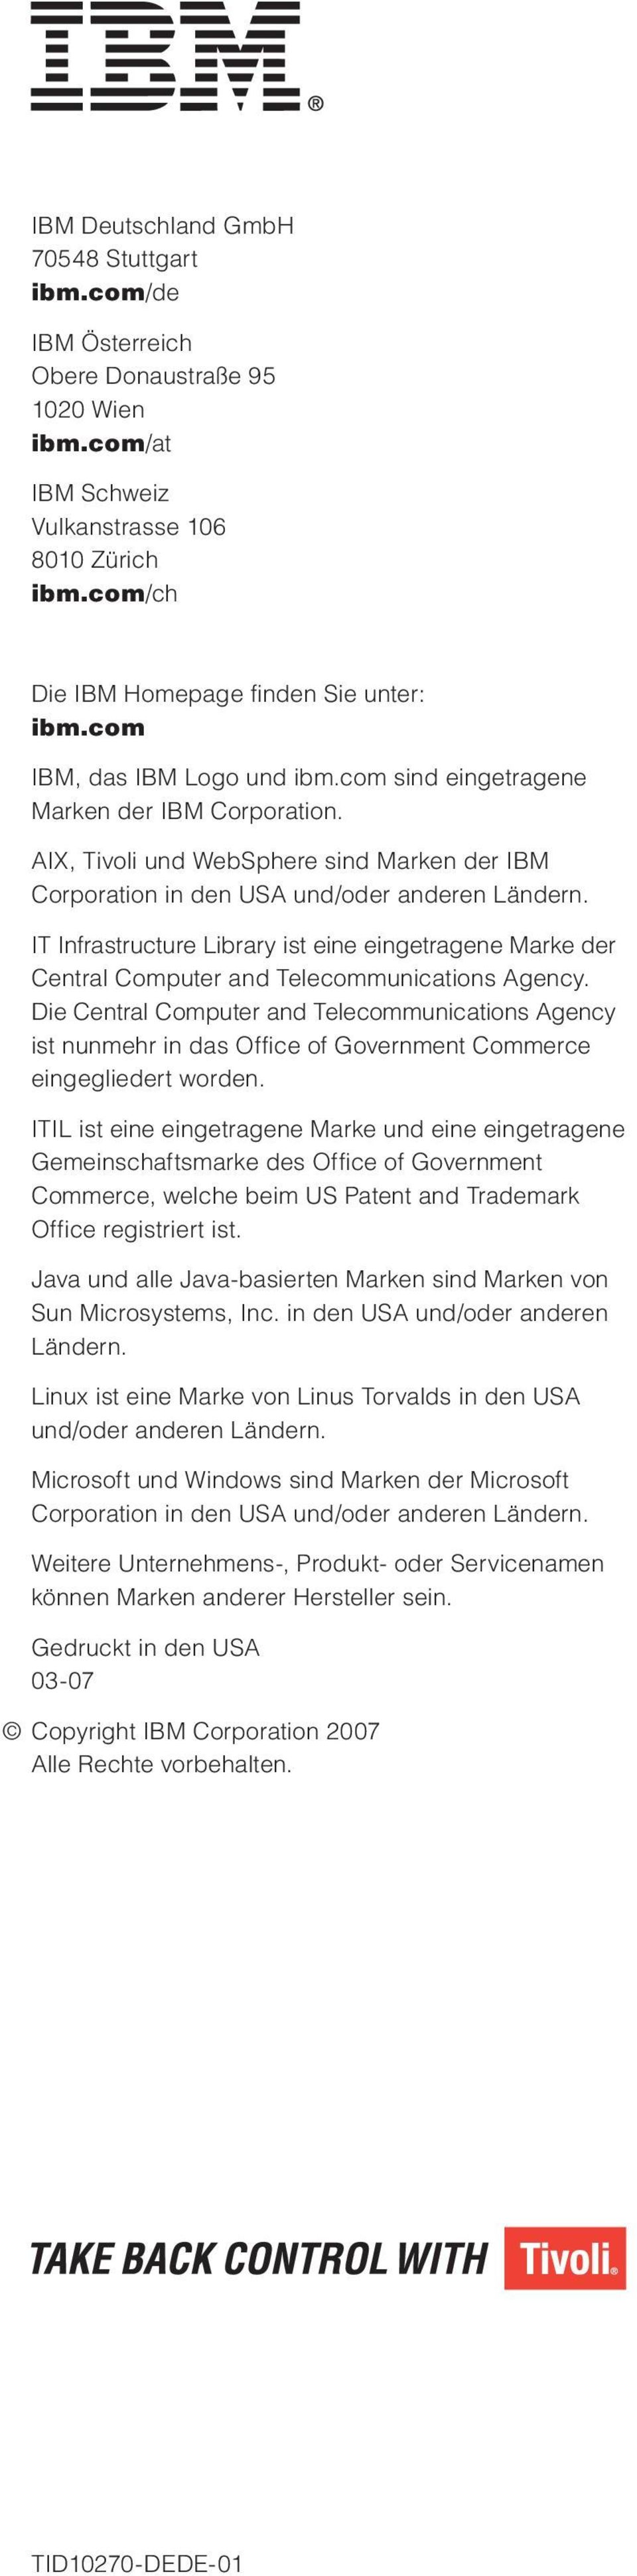 IT Infrastructure Library ist eine eingetragene Marke der Central Computer and Telecommunications Agency.